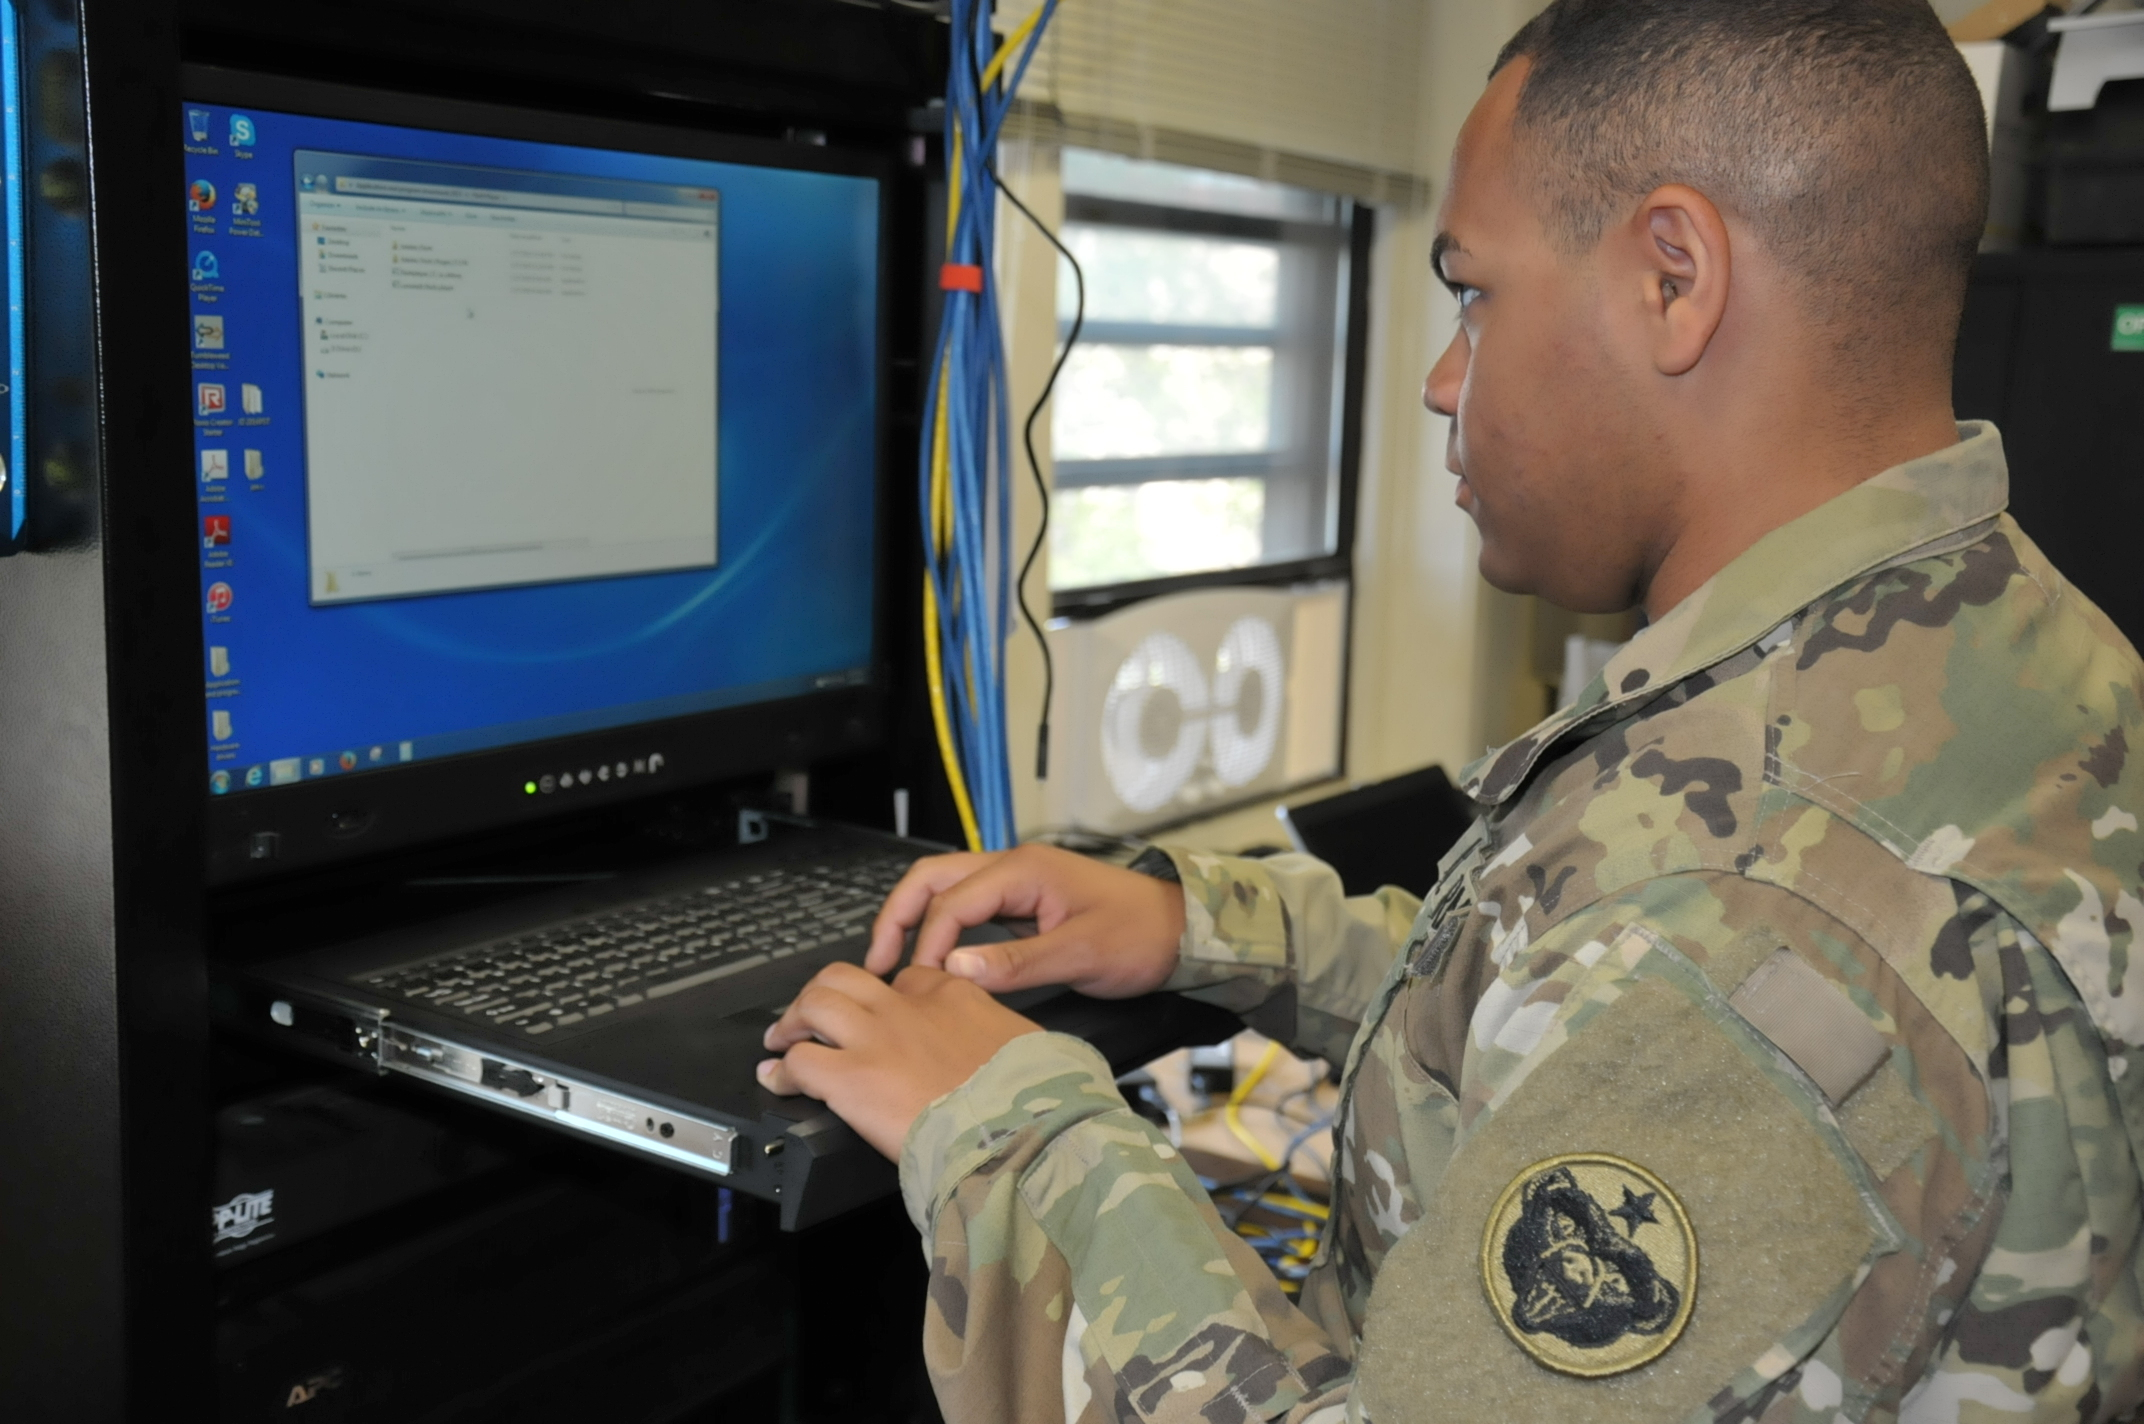 Spc. Isaiah Anderson, an Information Management Officer with U.S. Army Alaska updates the anti-virus software on a stand-alone, off-network computer in the signals section of USARAK headquarters.